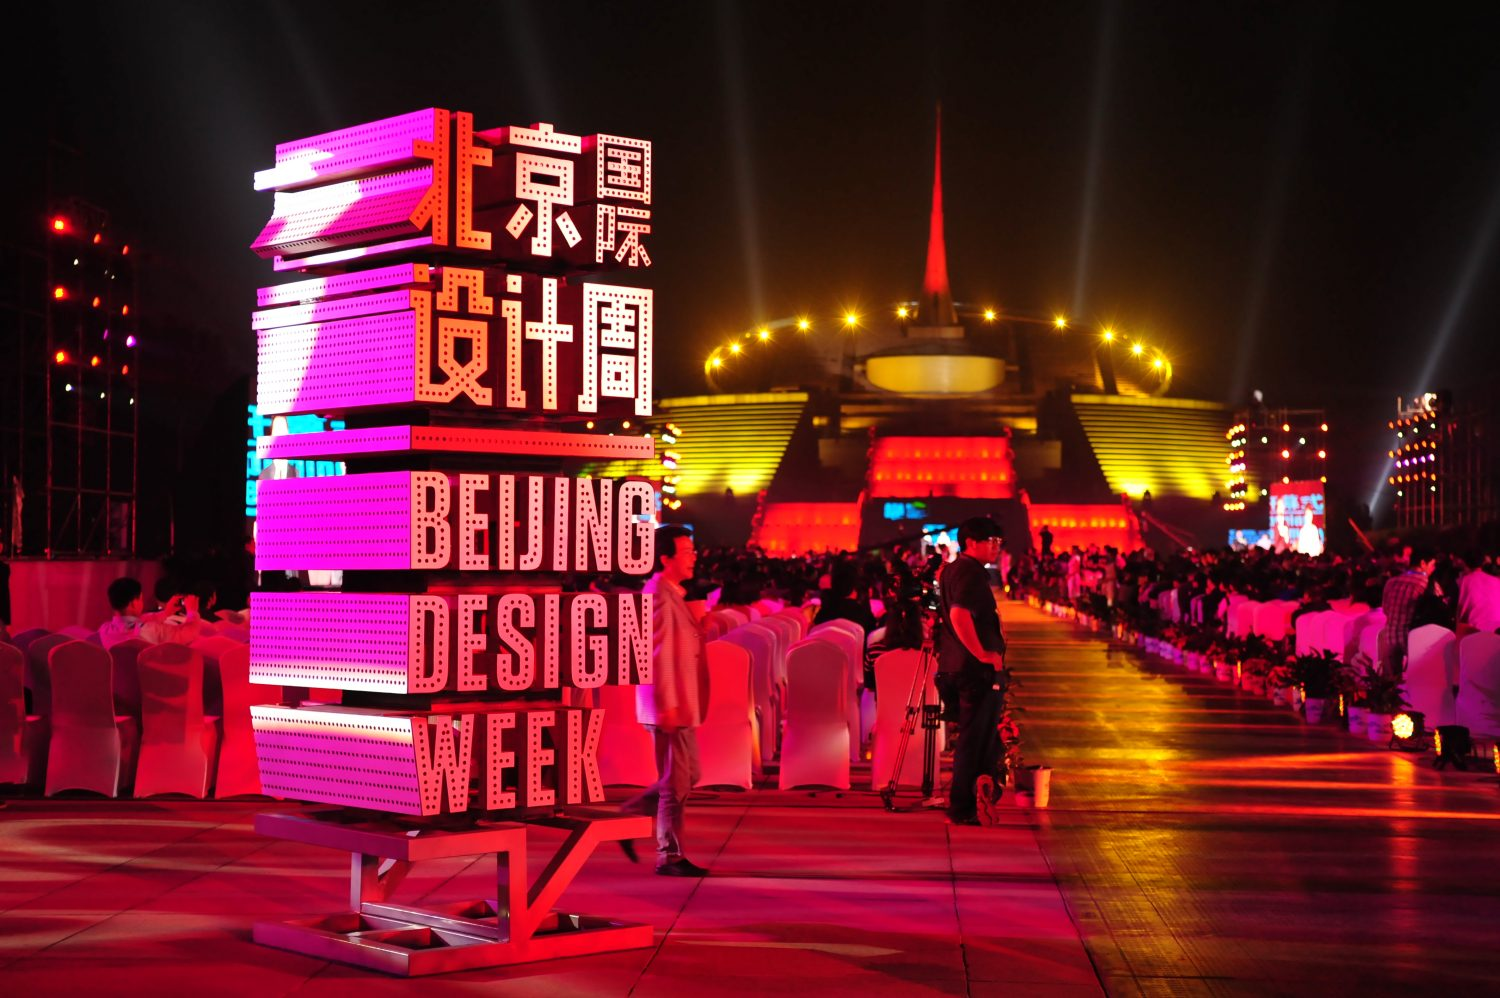 Beijing Design Week 2019 Event Guide beijing design week 2019 event guide BEIJING DESIGN WEEK 2019 EVENT GUIDE China Millennium Monument Opening Ceremony  BJDW2011 3